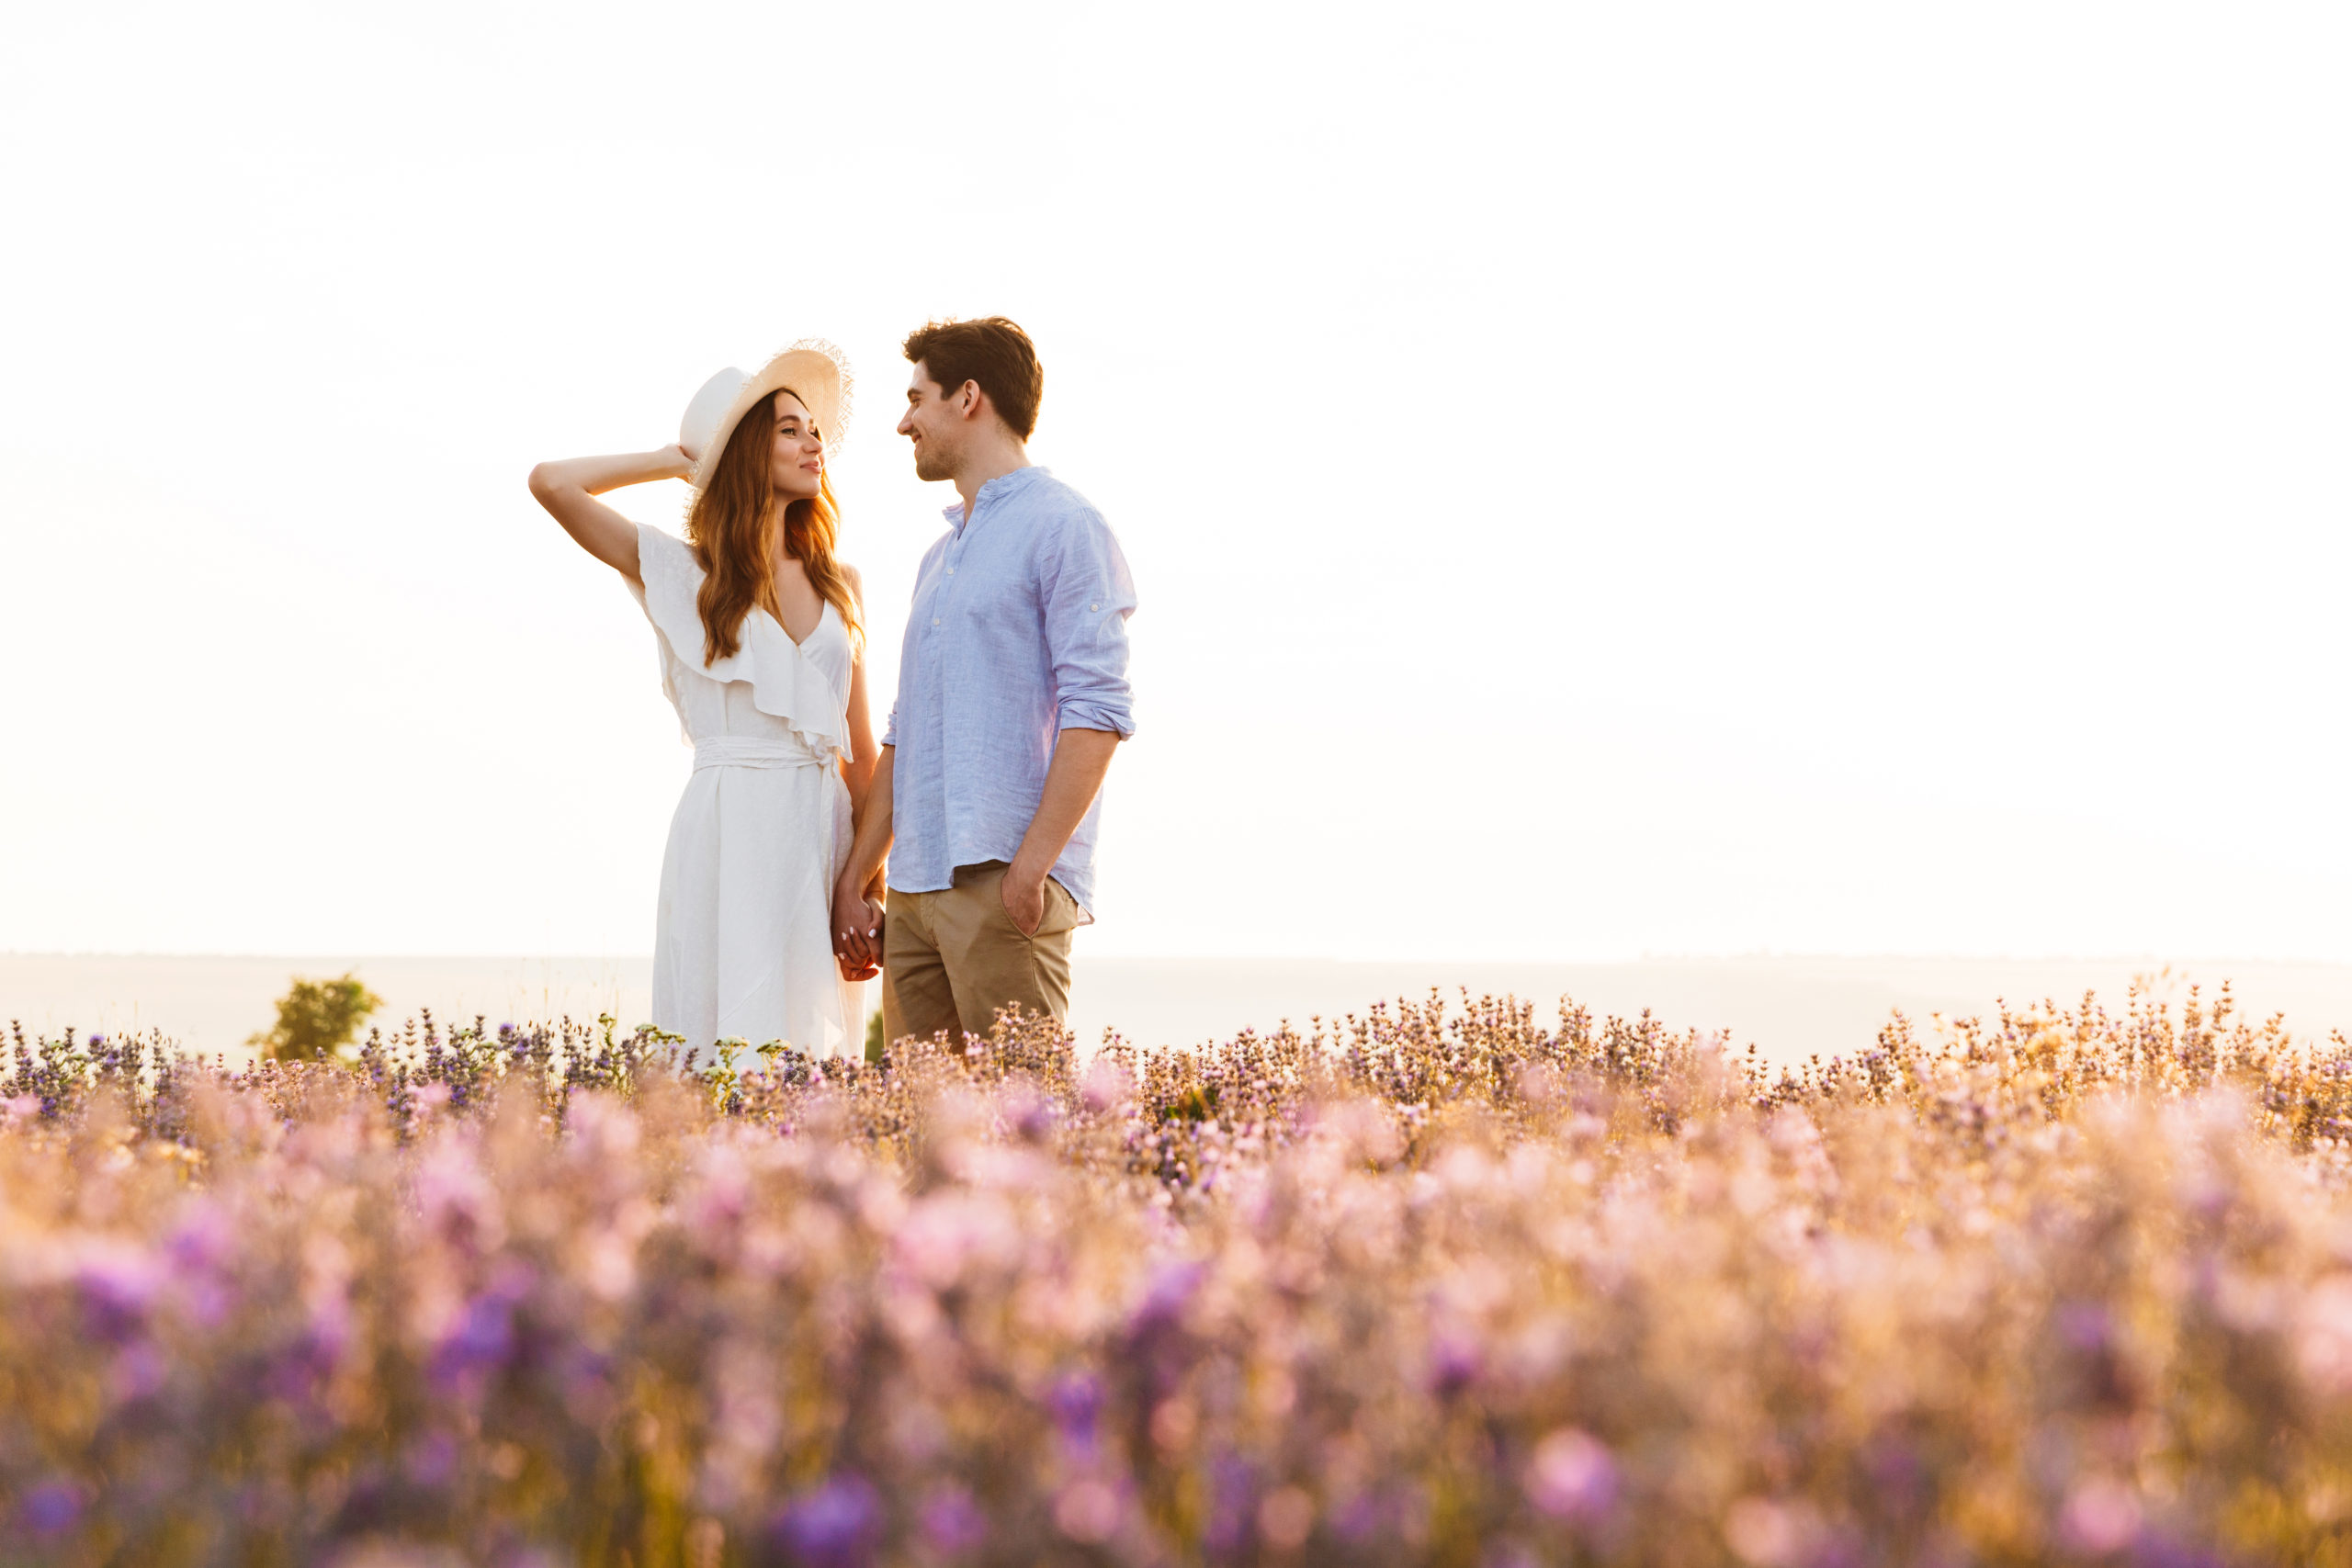 Photo,Of,Beautiful,Young,People,Dating,And,Walking,Together,Outdoor